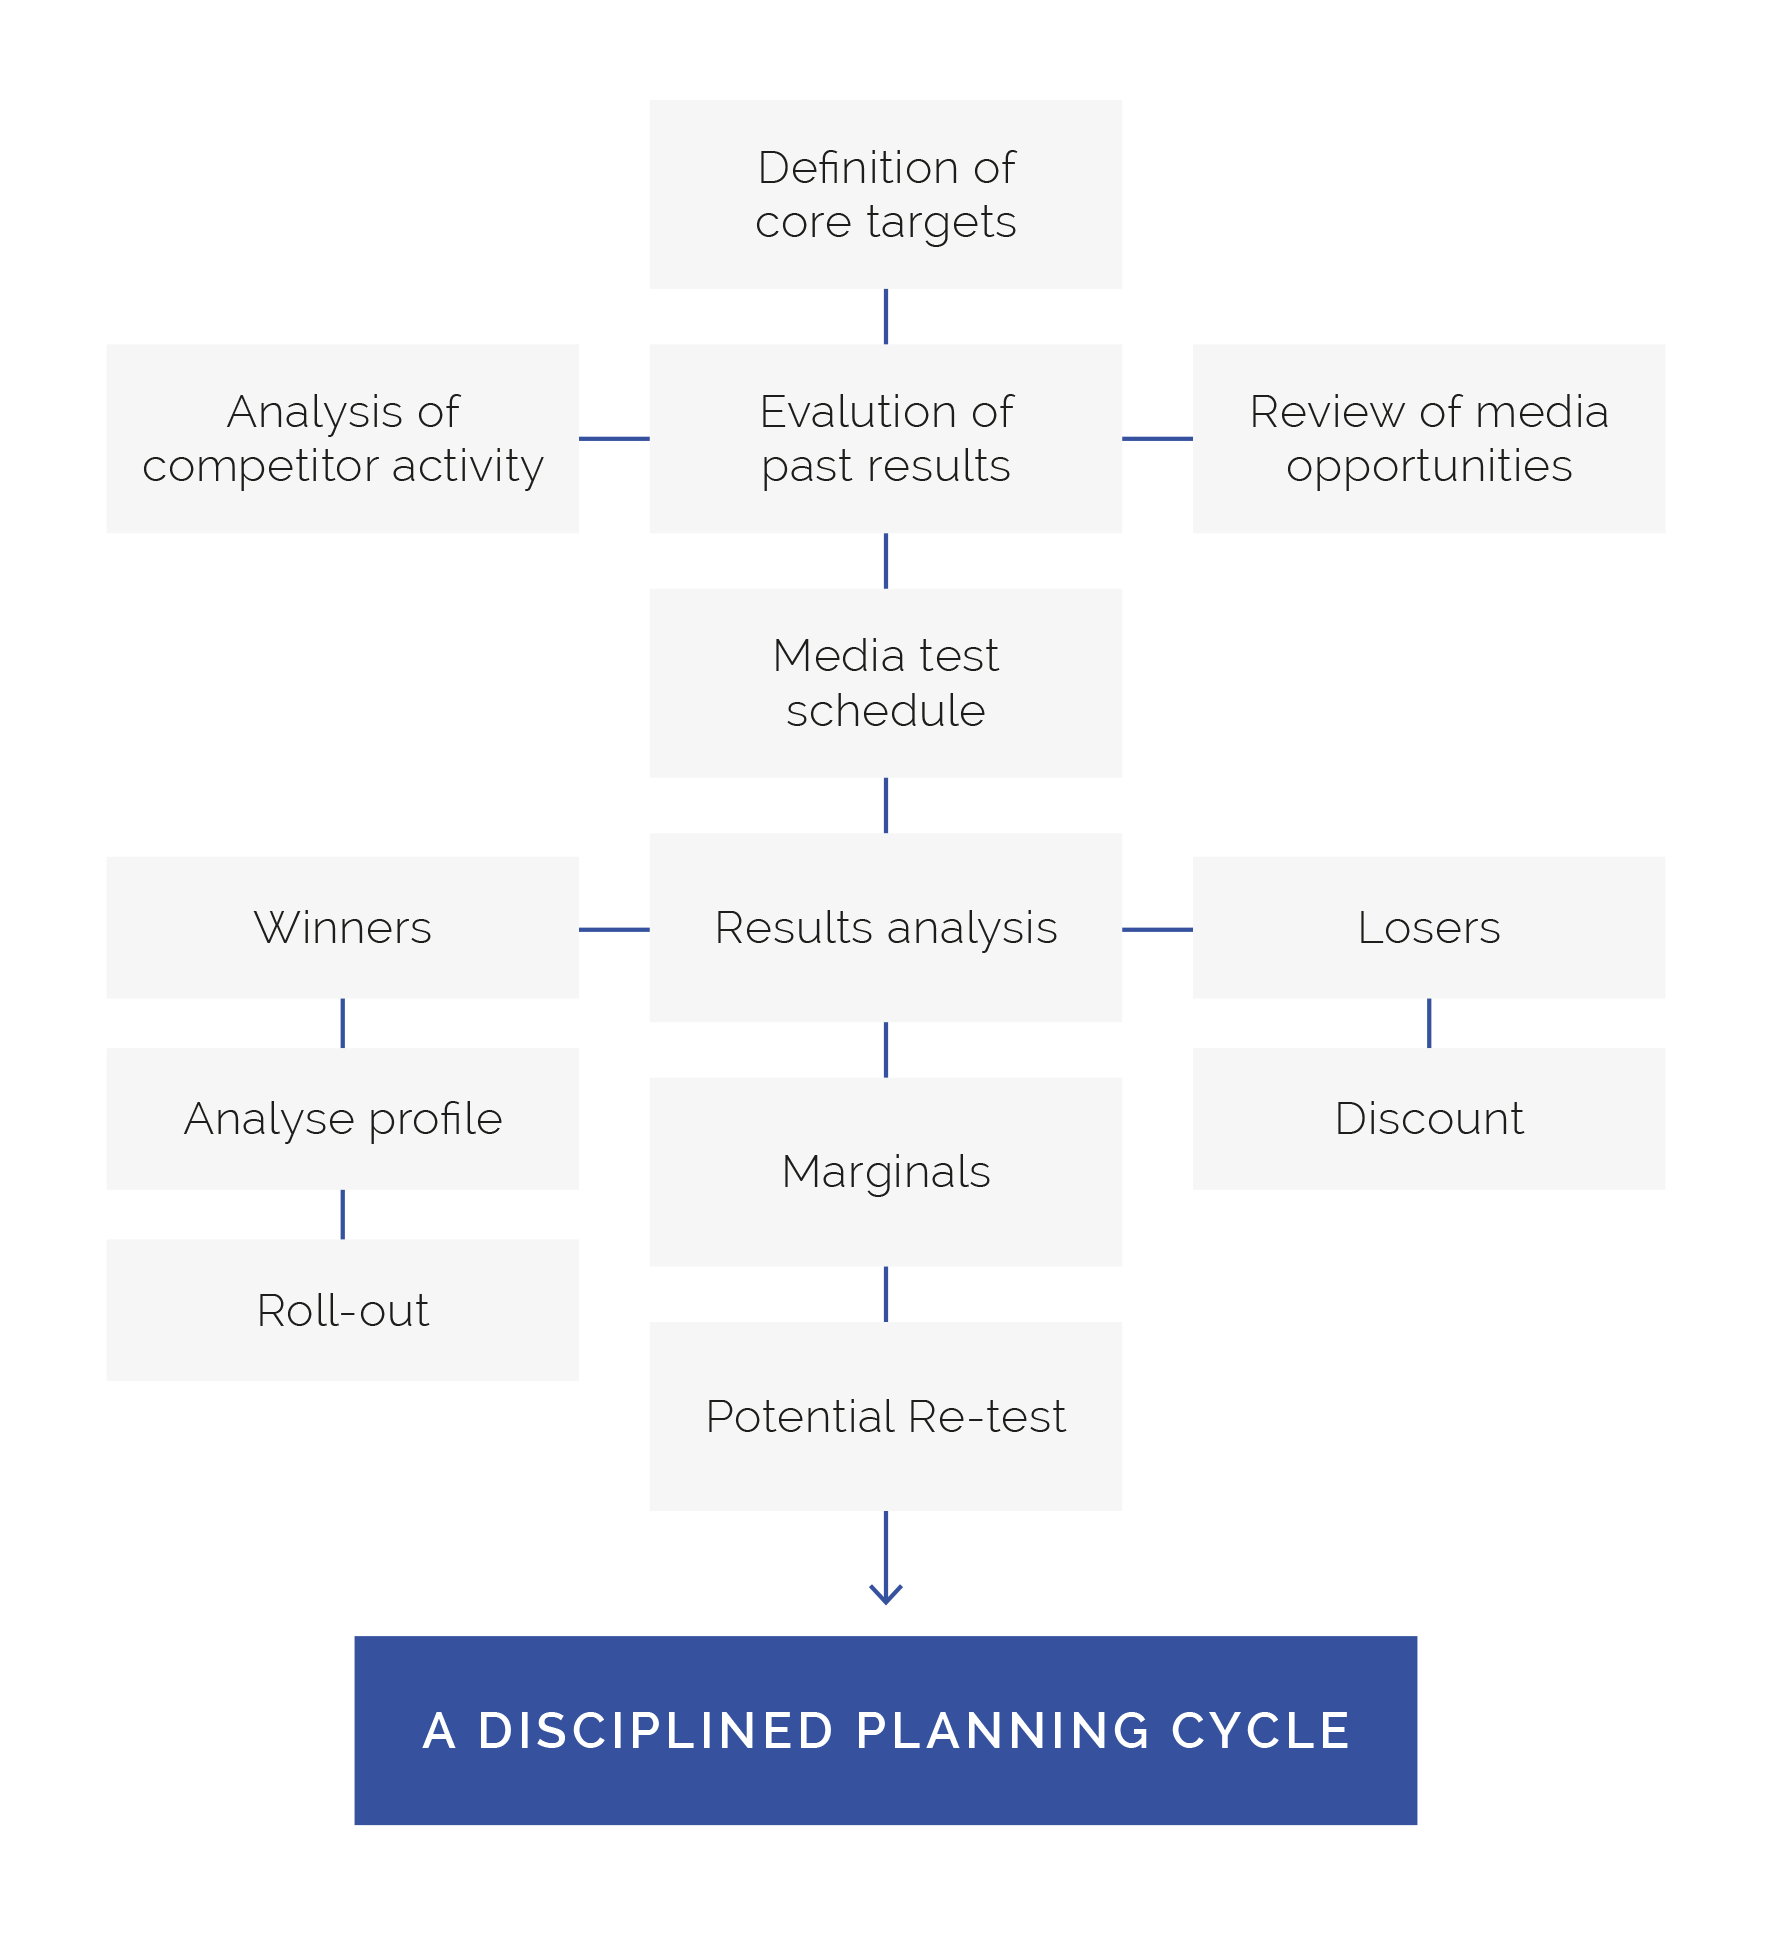 Disciplined Planning Cycle Chart